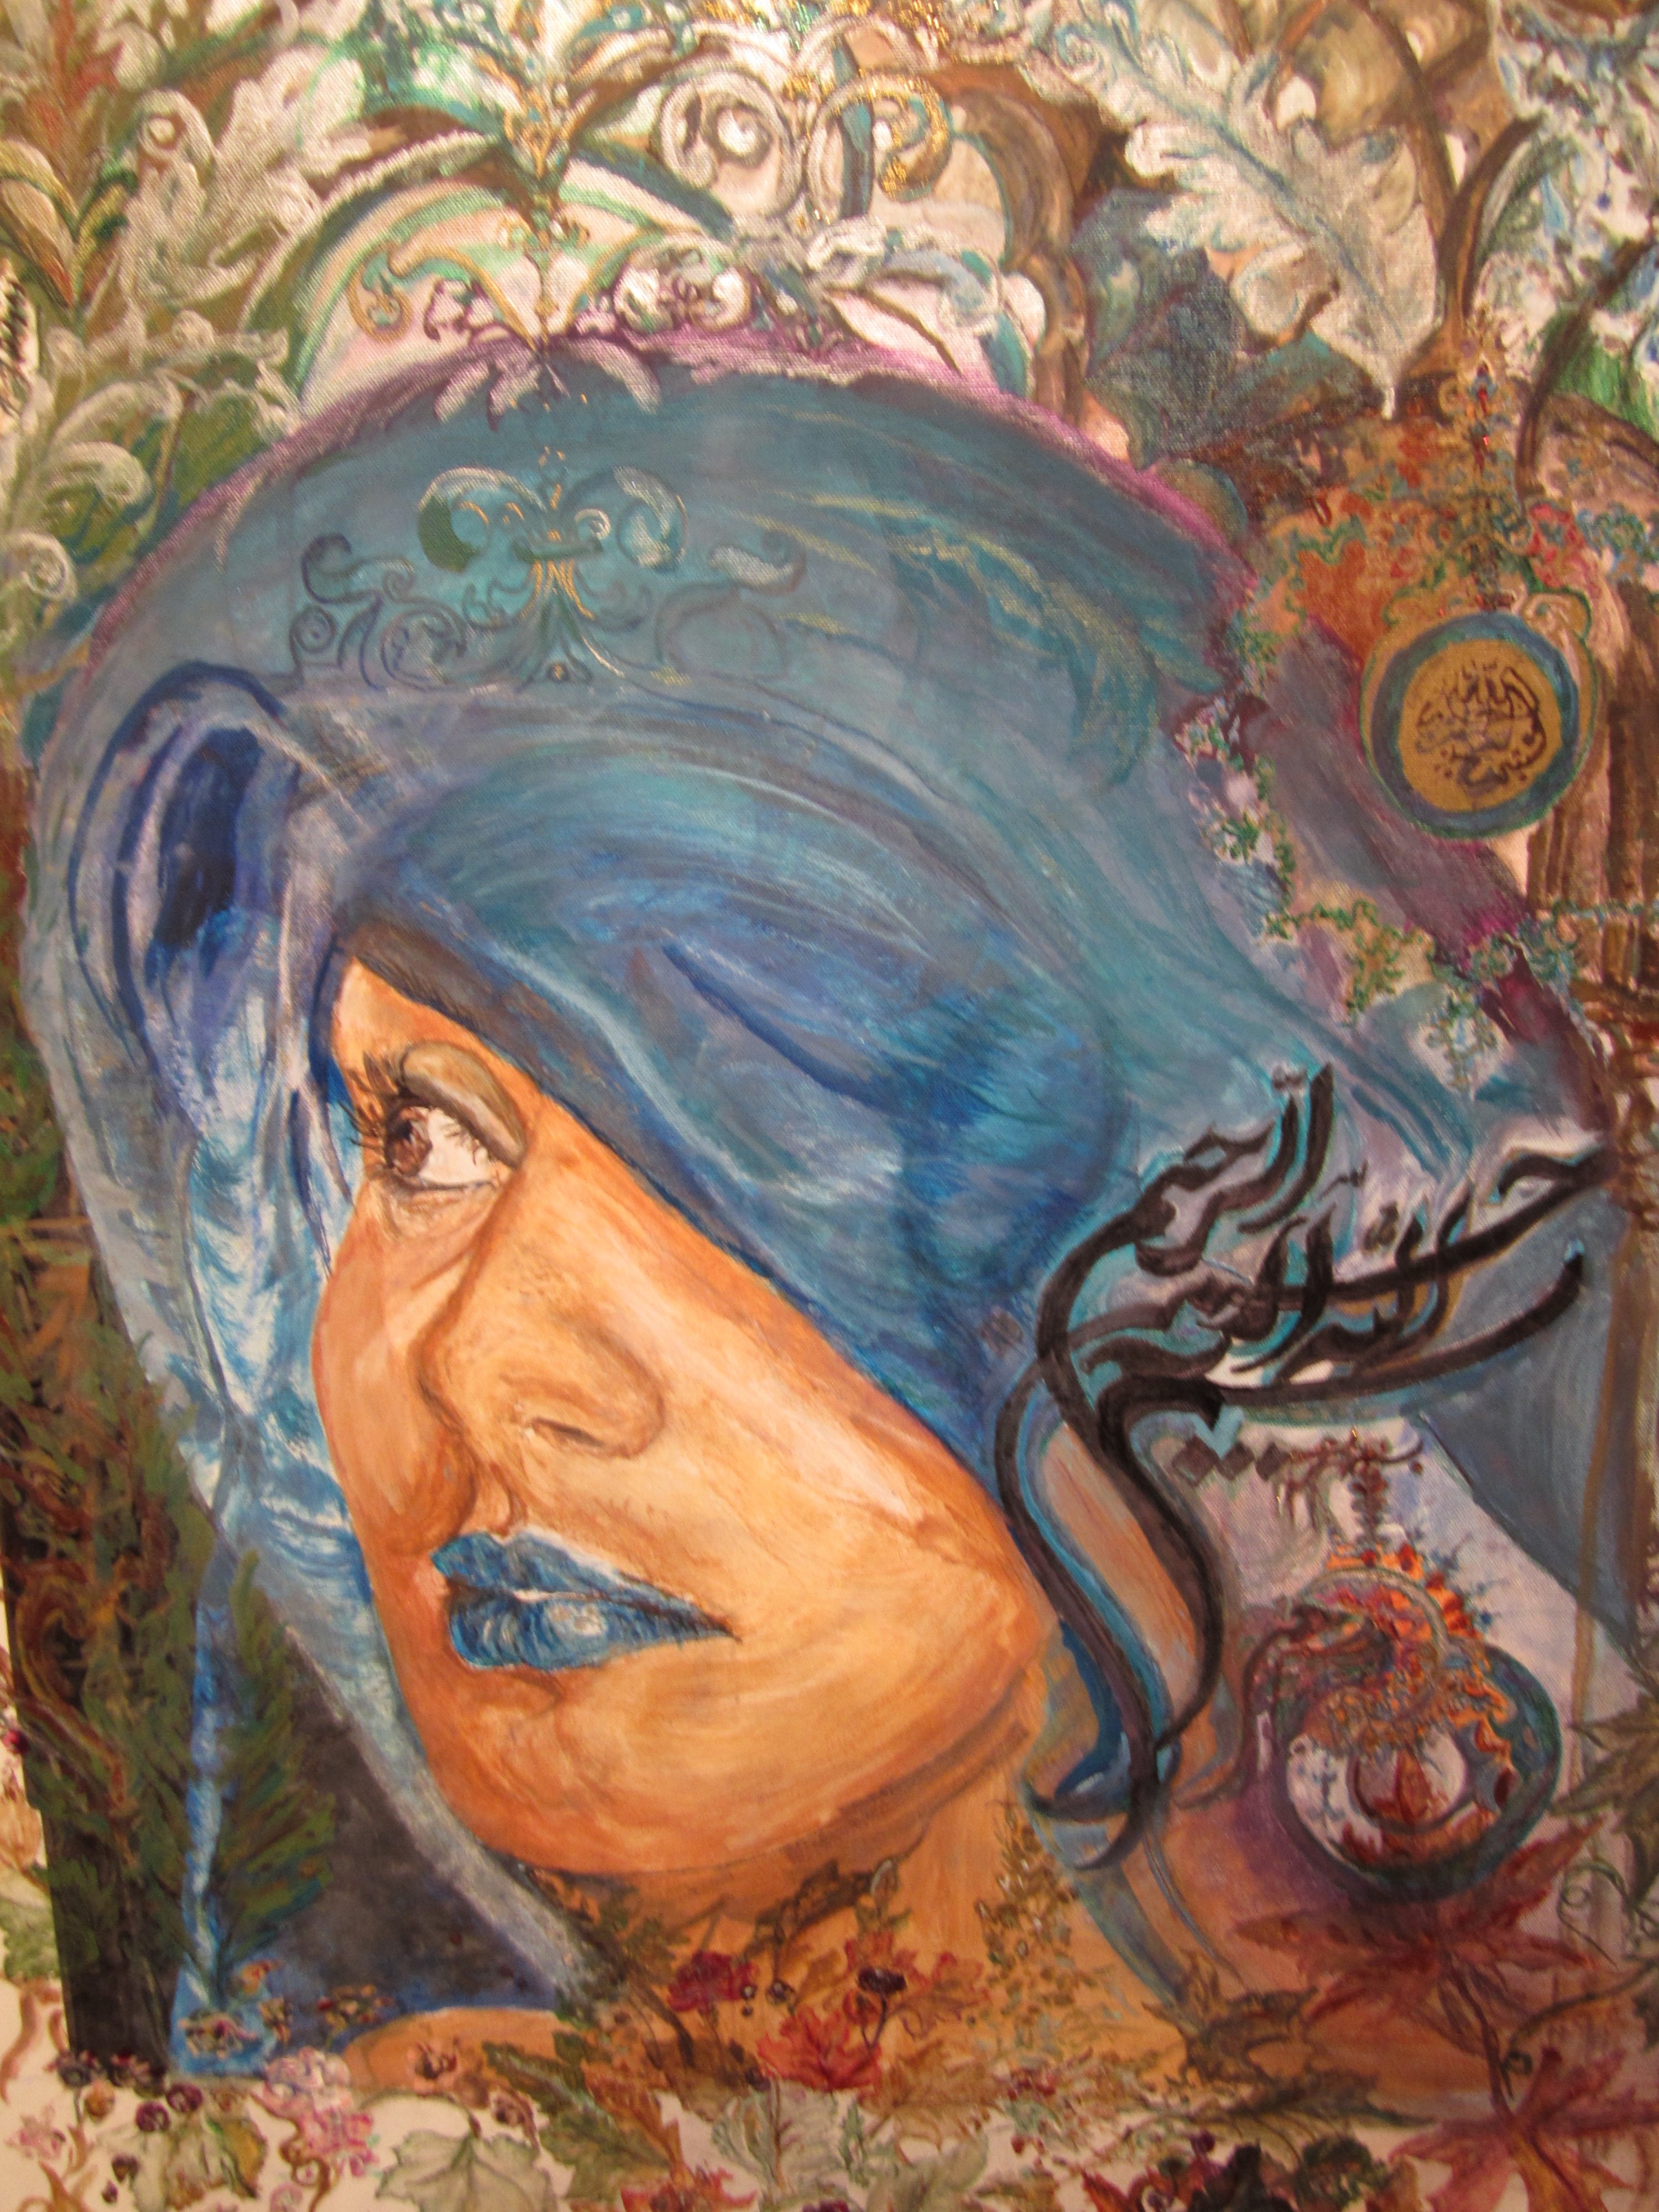 Artists' work reflects the Great Mothers of Islam